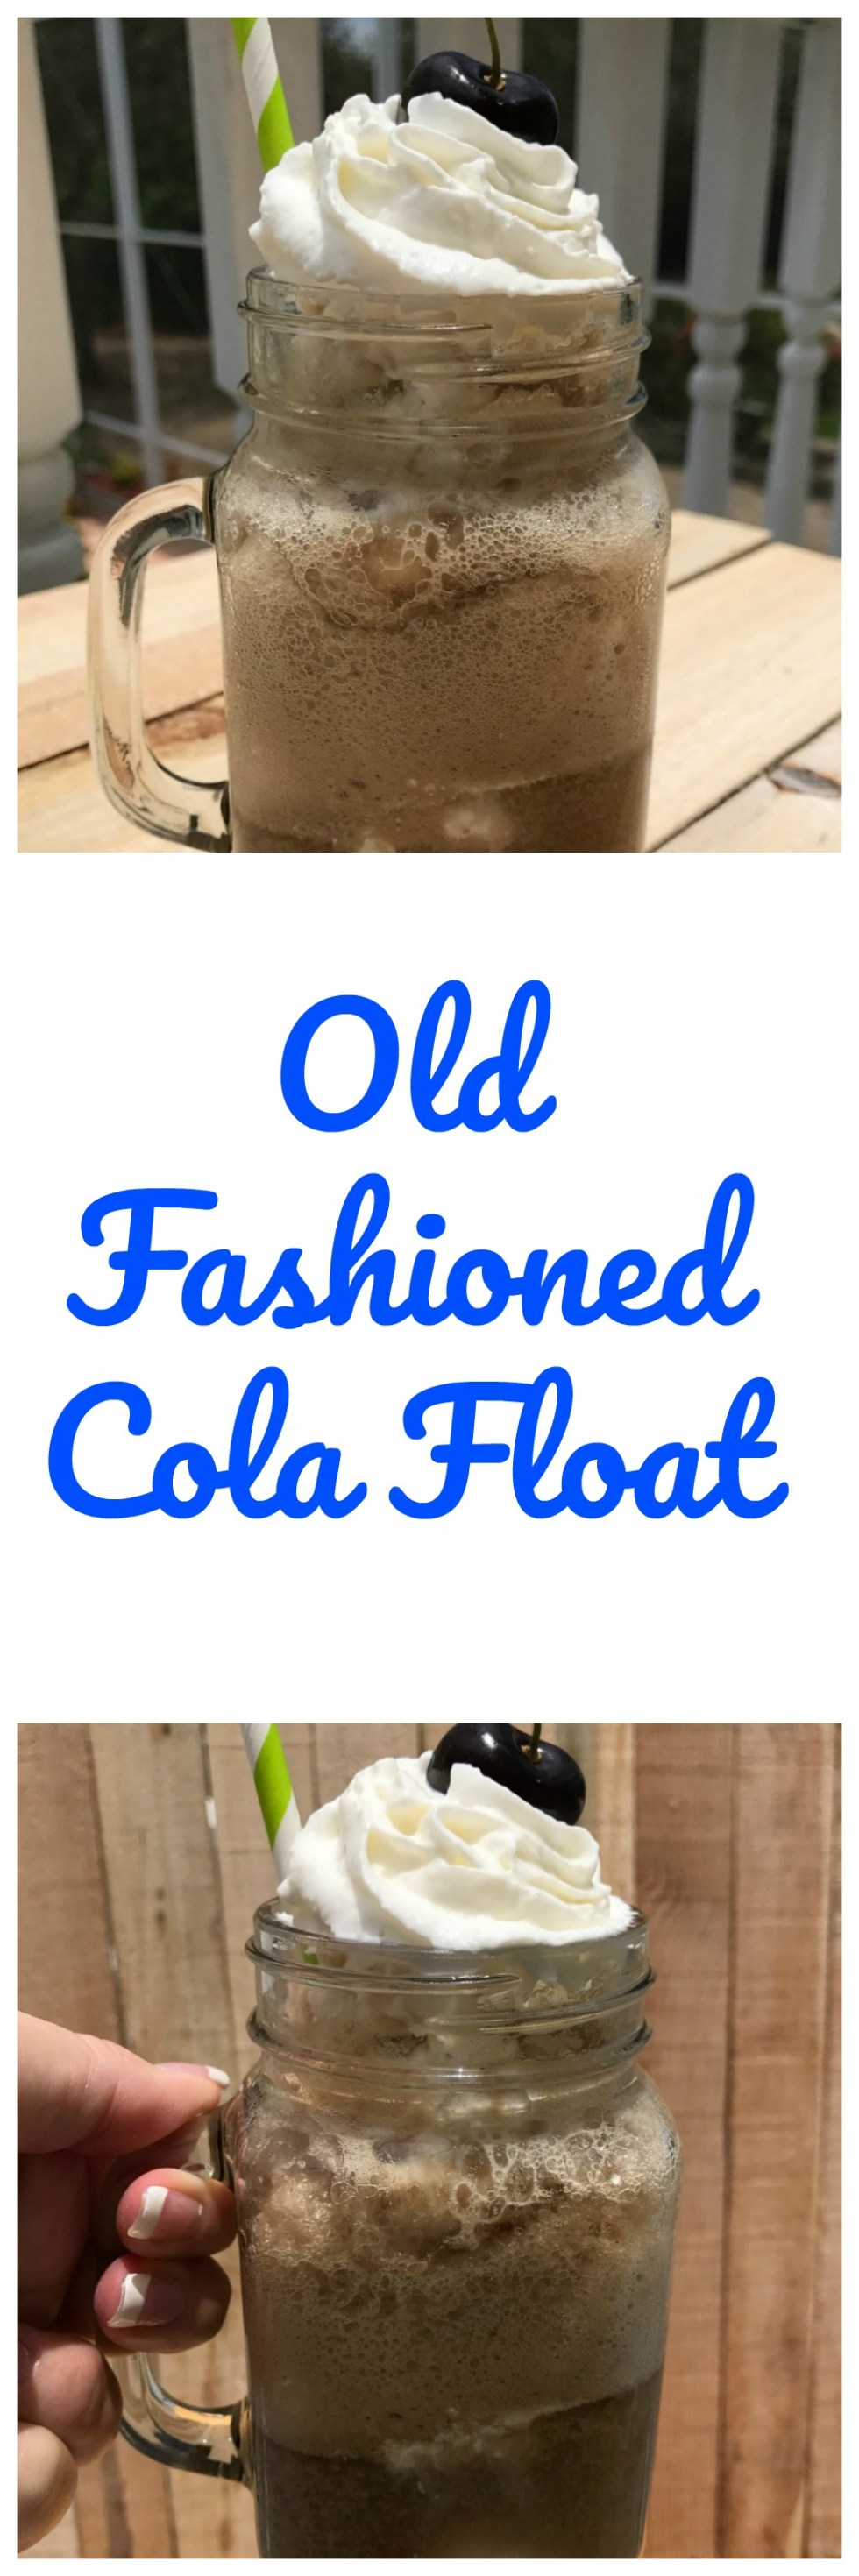 old fashioned cola float Pinterest image